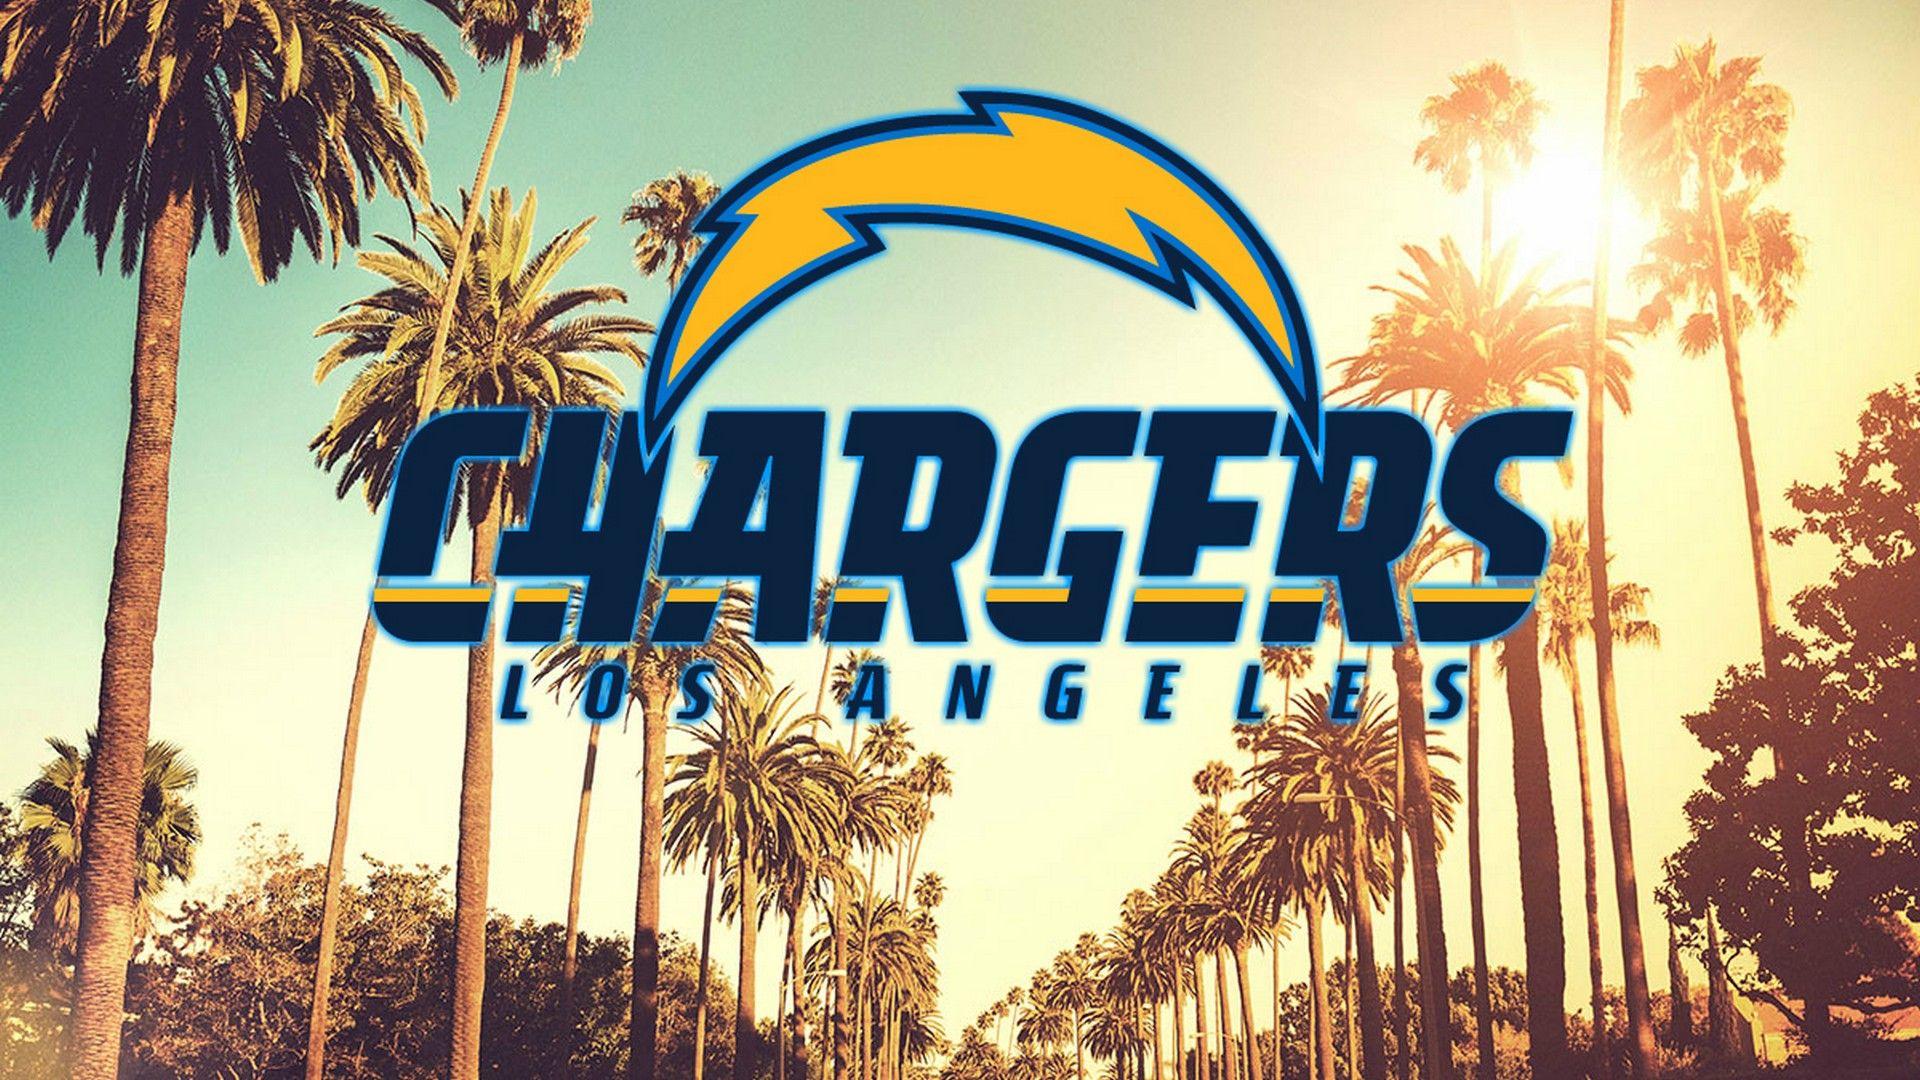 Stadium Nfl San Diego Chargers American Football People Sports